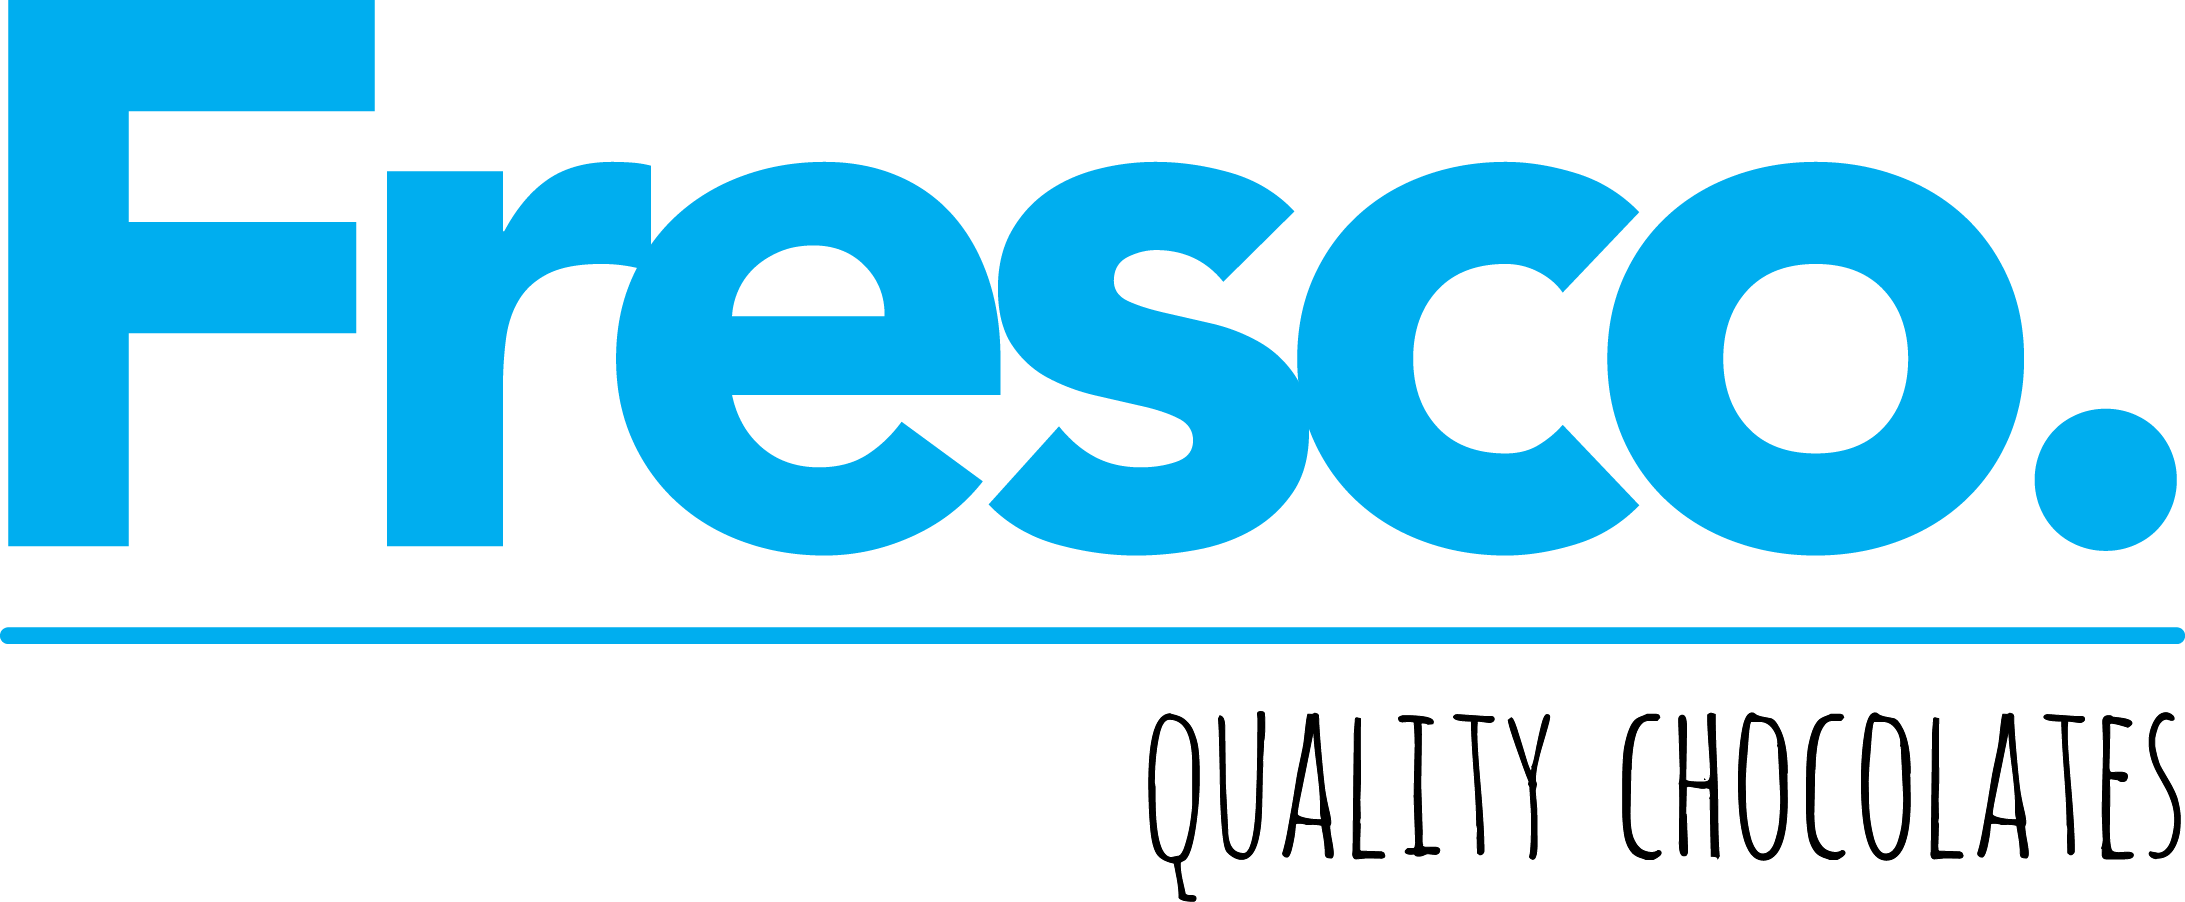 Fresco - Quality Chocolates